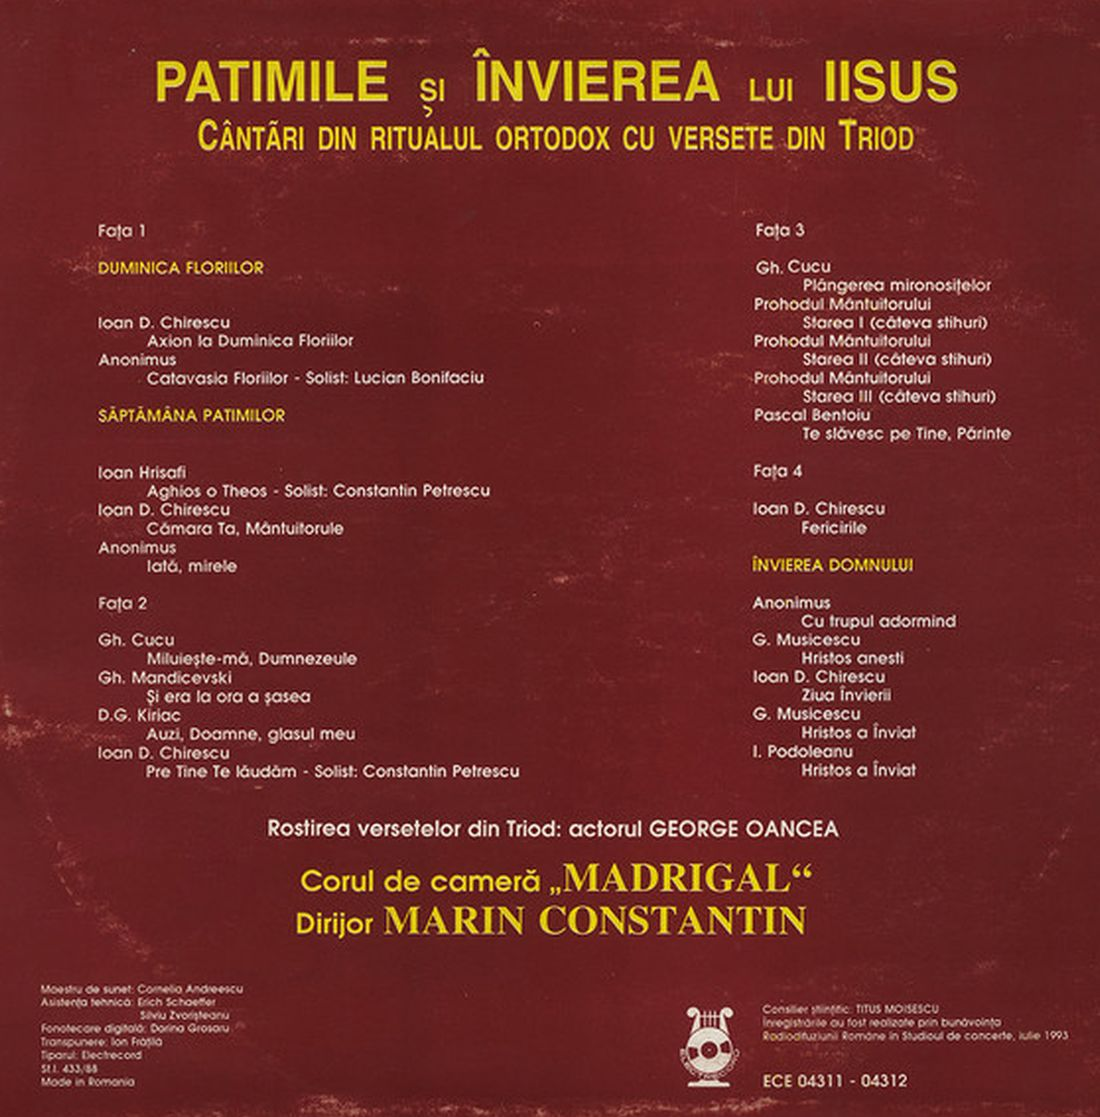 Foto 2. Booklet CD Patimile si invierea lui Iisus - Madrigal.Electrecord (foto si prel.1100 B.Dragomir)